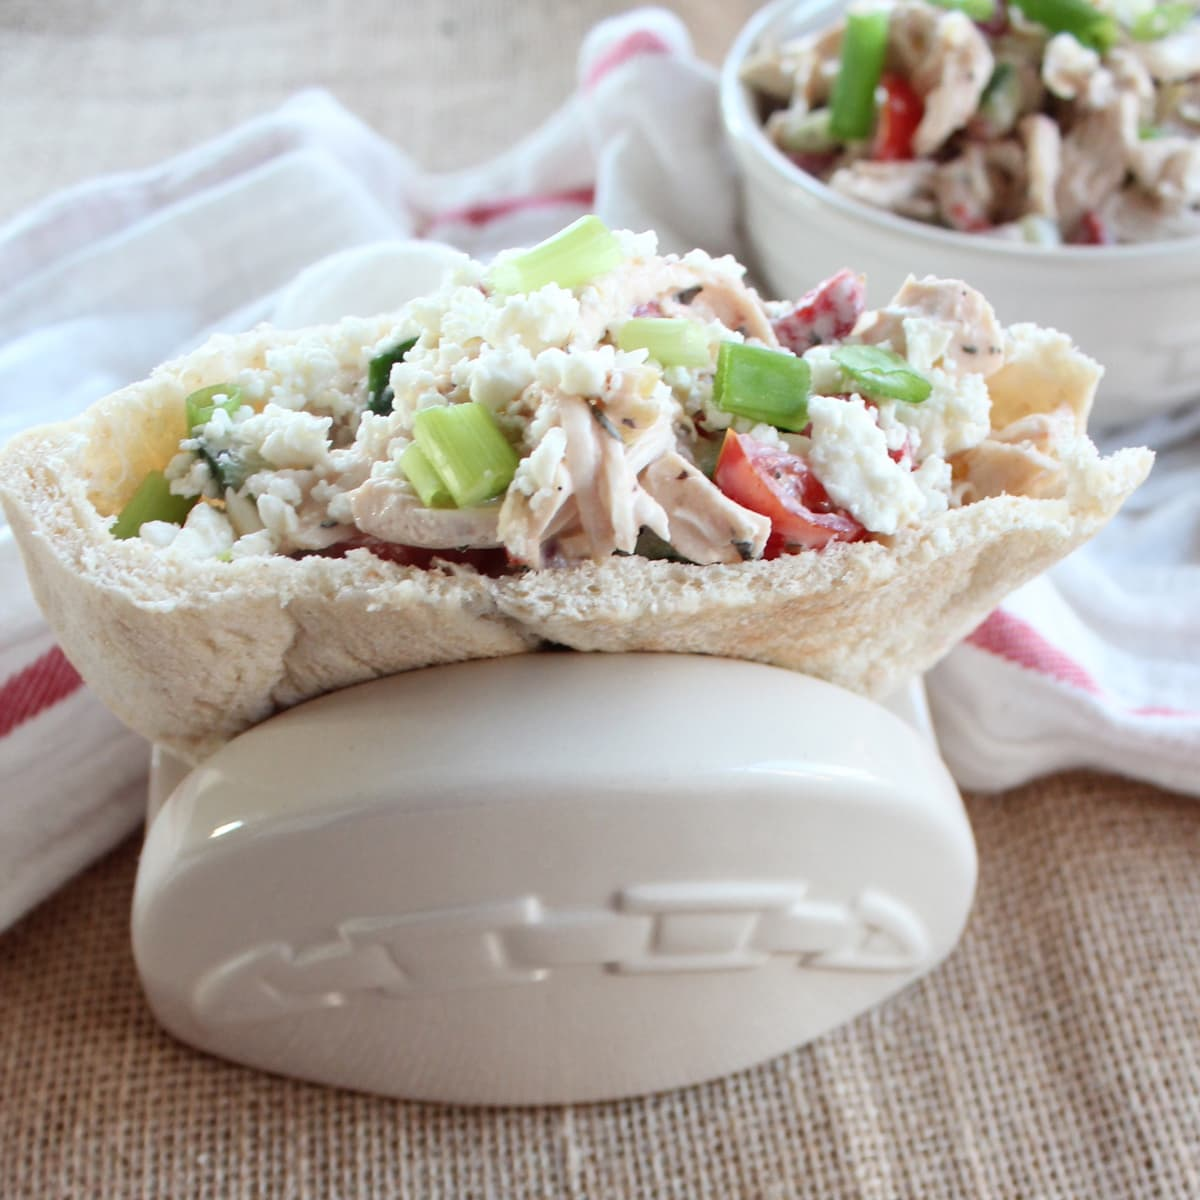 ... feta cheese in this delicious homemade Greek Chicken Salad Sandwich